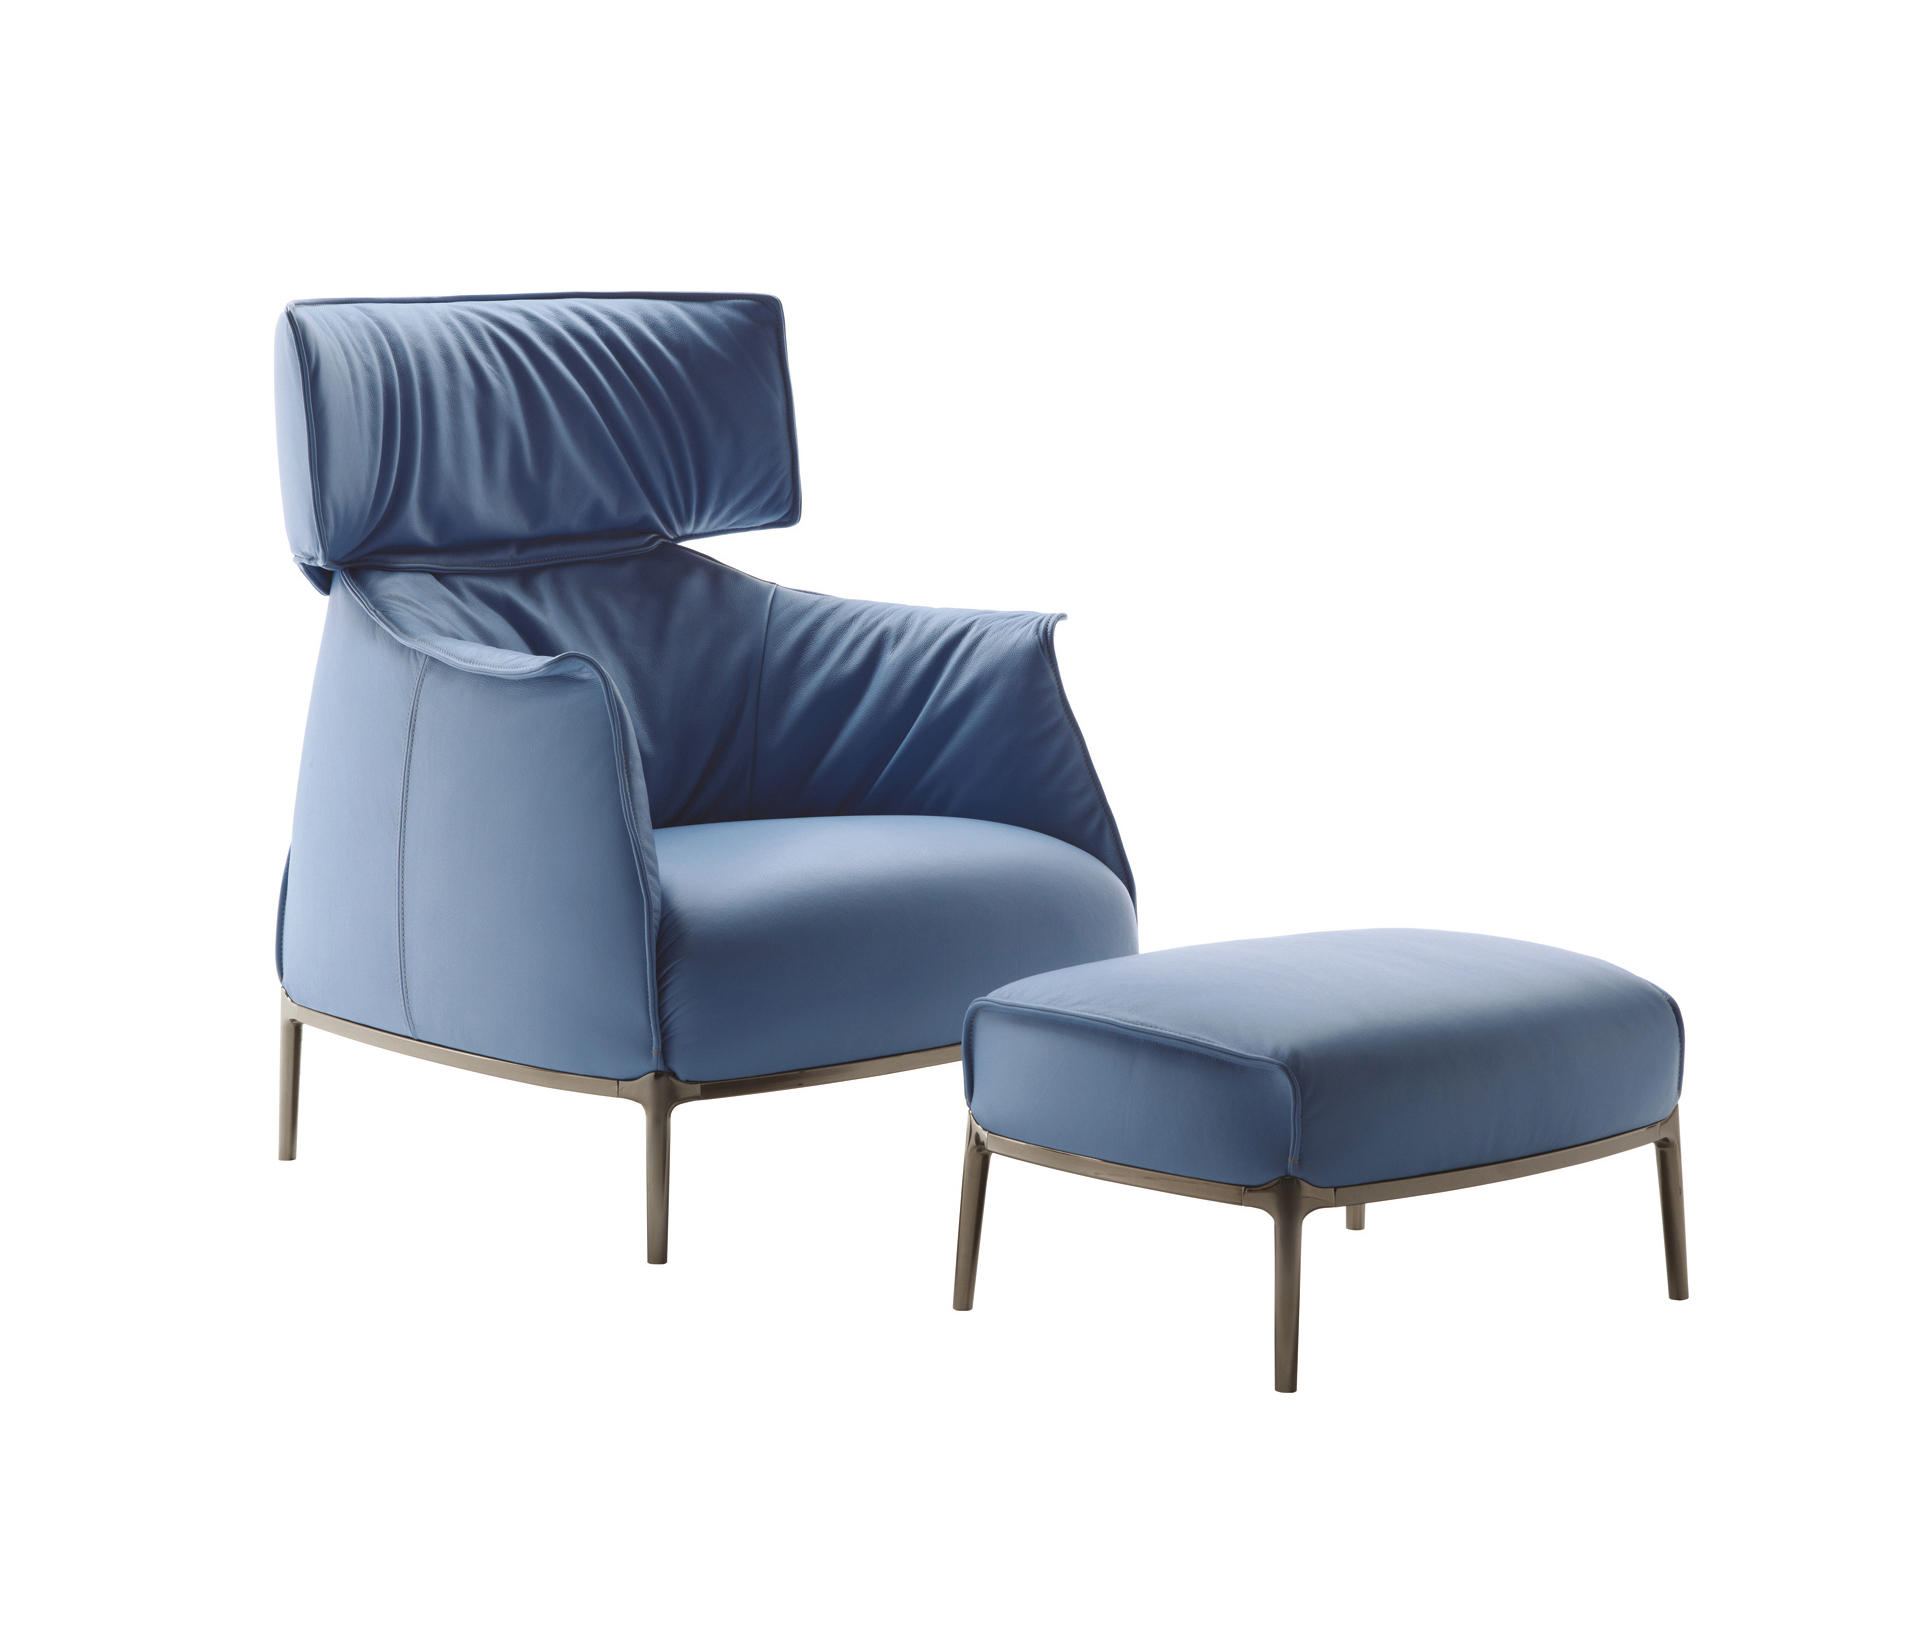 Archibald king armchairs from poltrona frau architonic for Poltronafrau